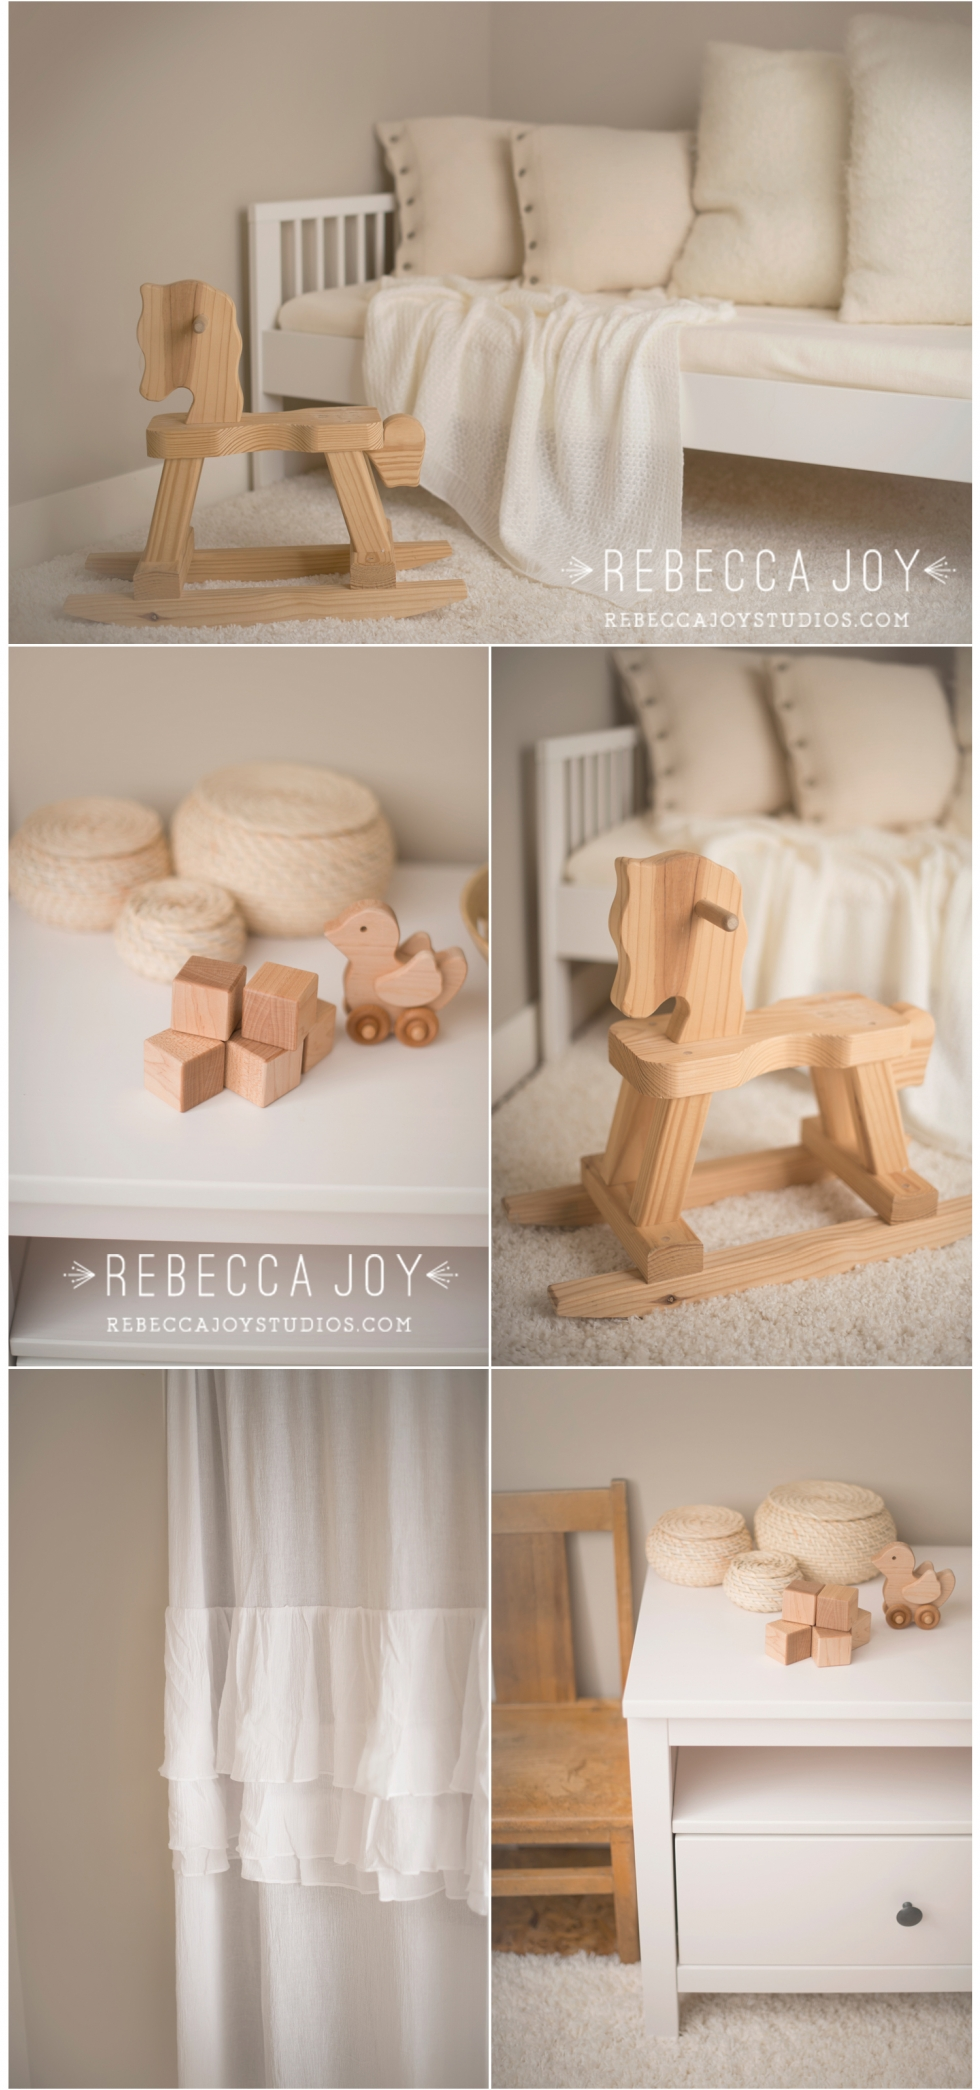 Studio Tour | Victoria BC newborn and maternity photographer | Rebecca Joy Studios